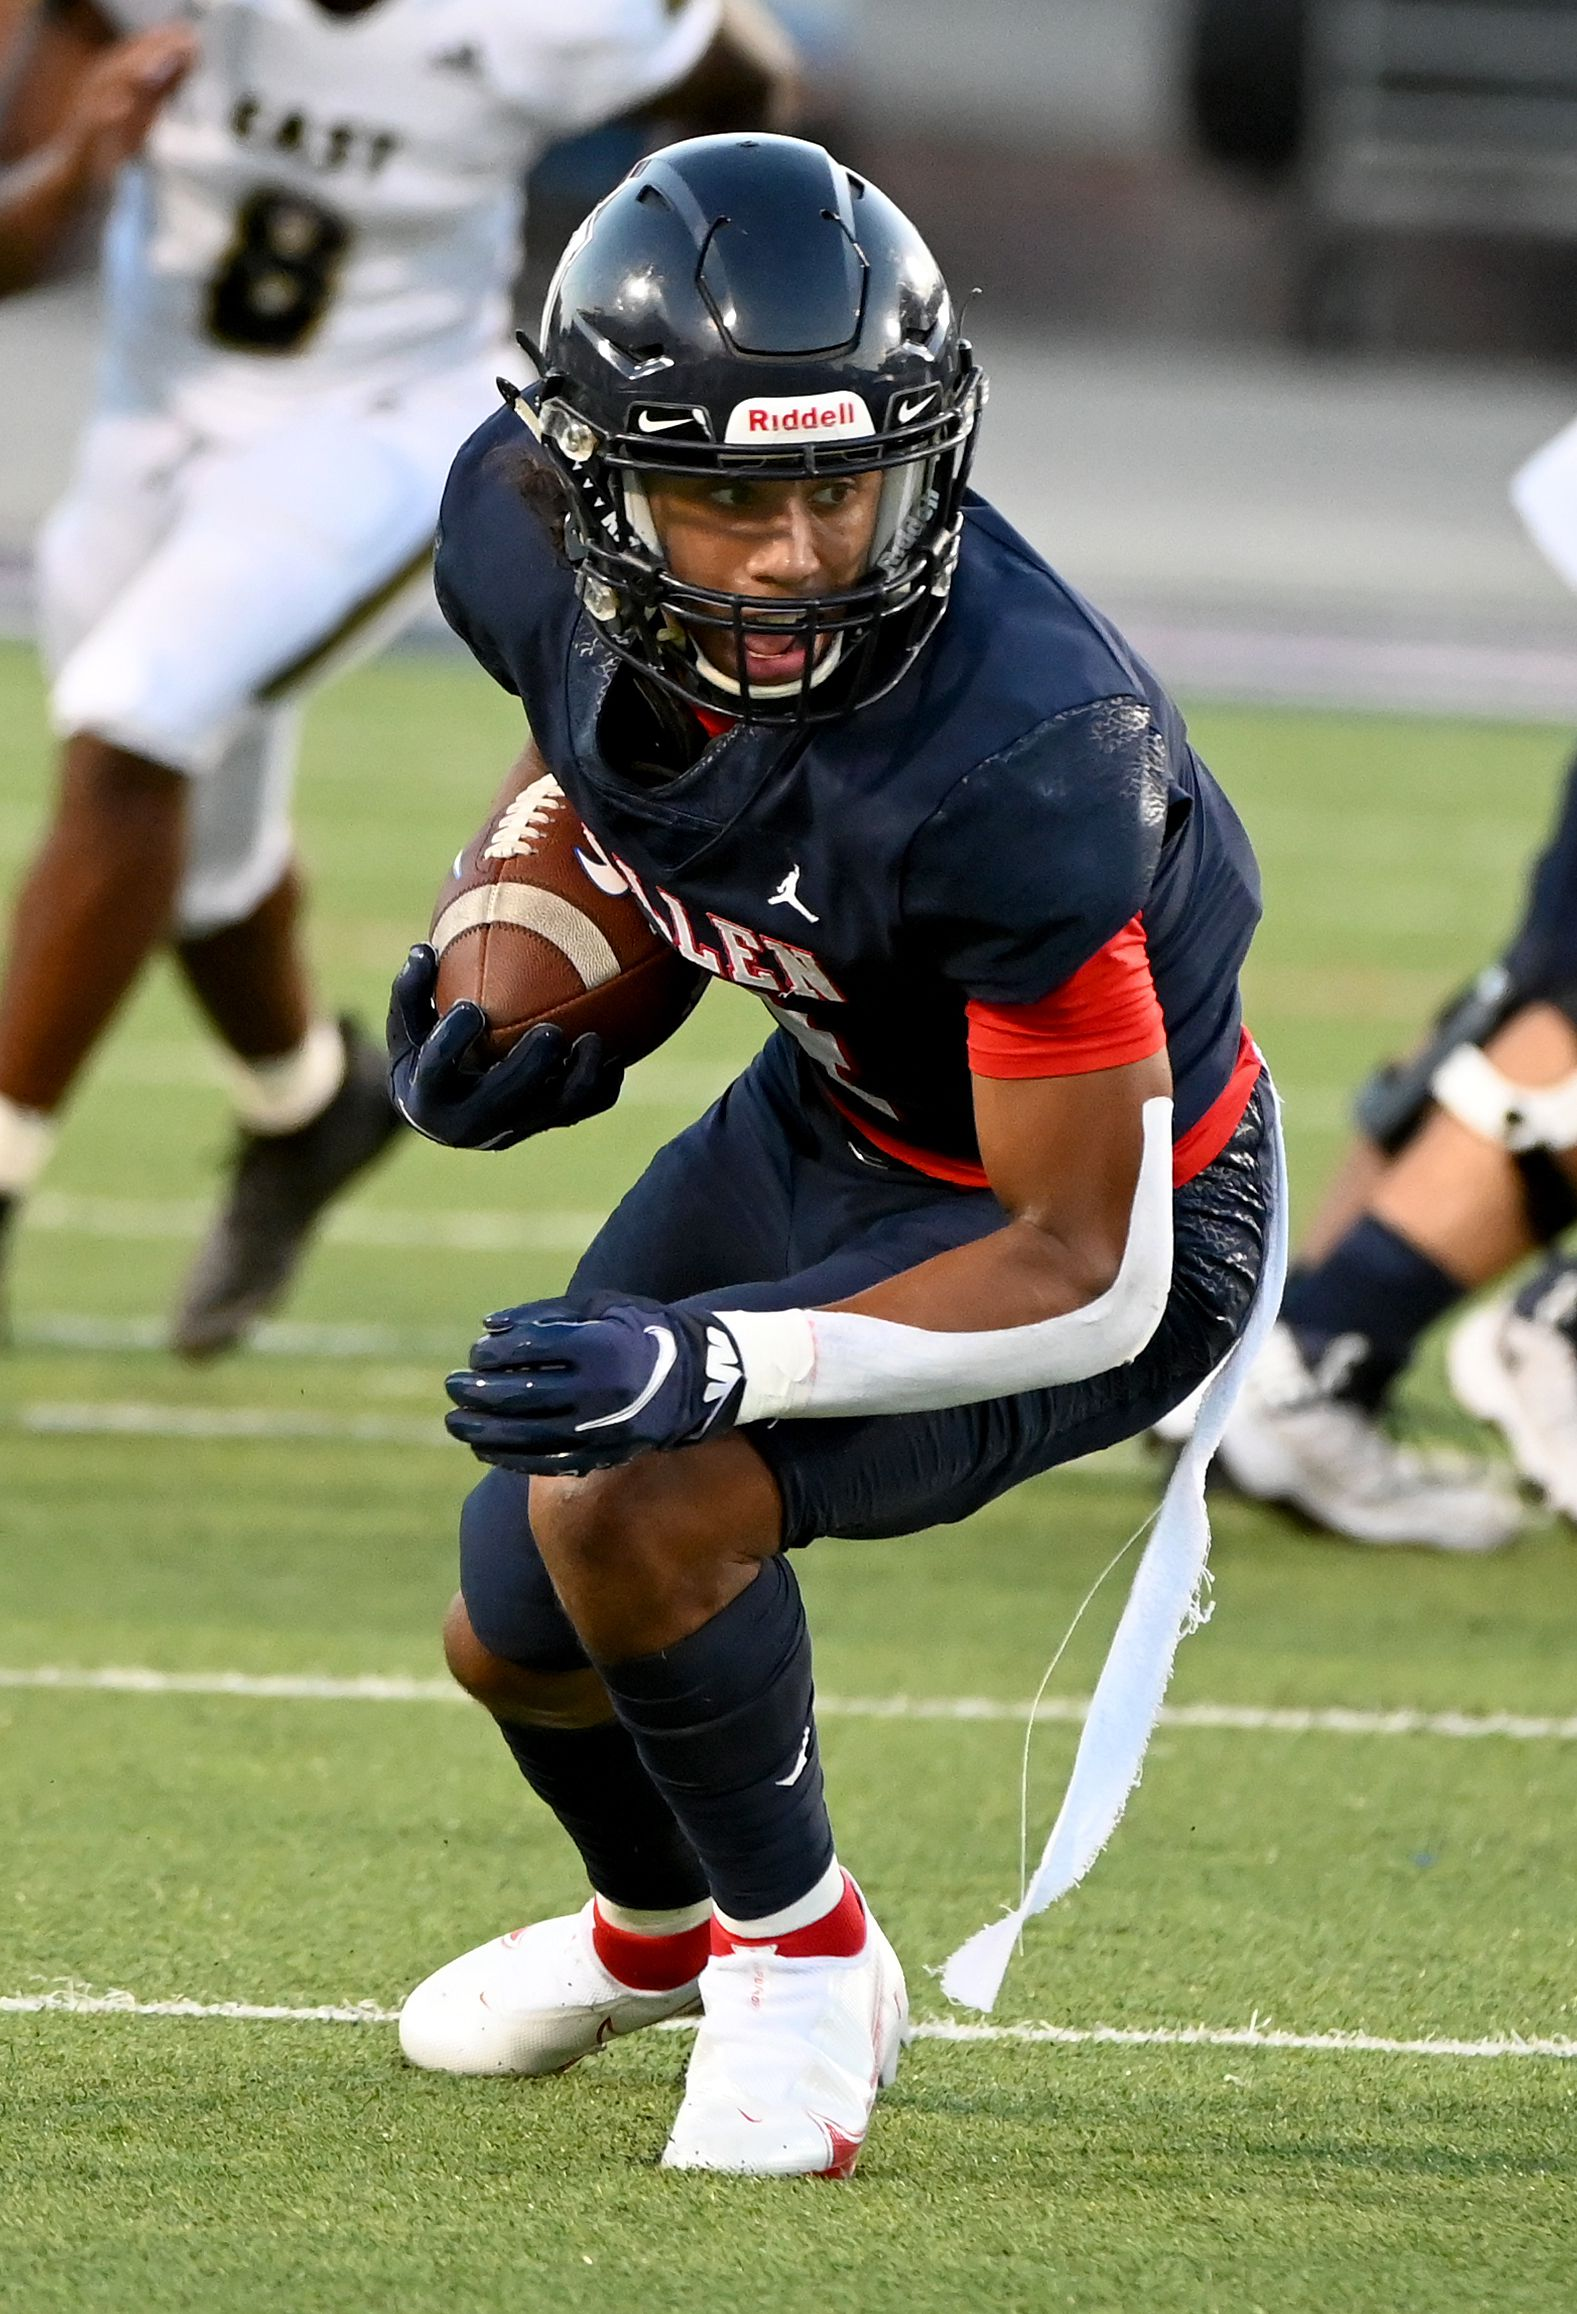 Allen's Jordyn Tyson catches a pass in the first half during a high school football game between Plano East and Allen, Friday, Aug. 27, 2021, in Allen, Texas. (Matt Strasen/Special Contributor)